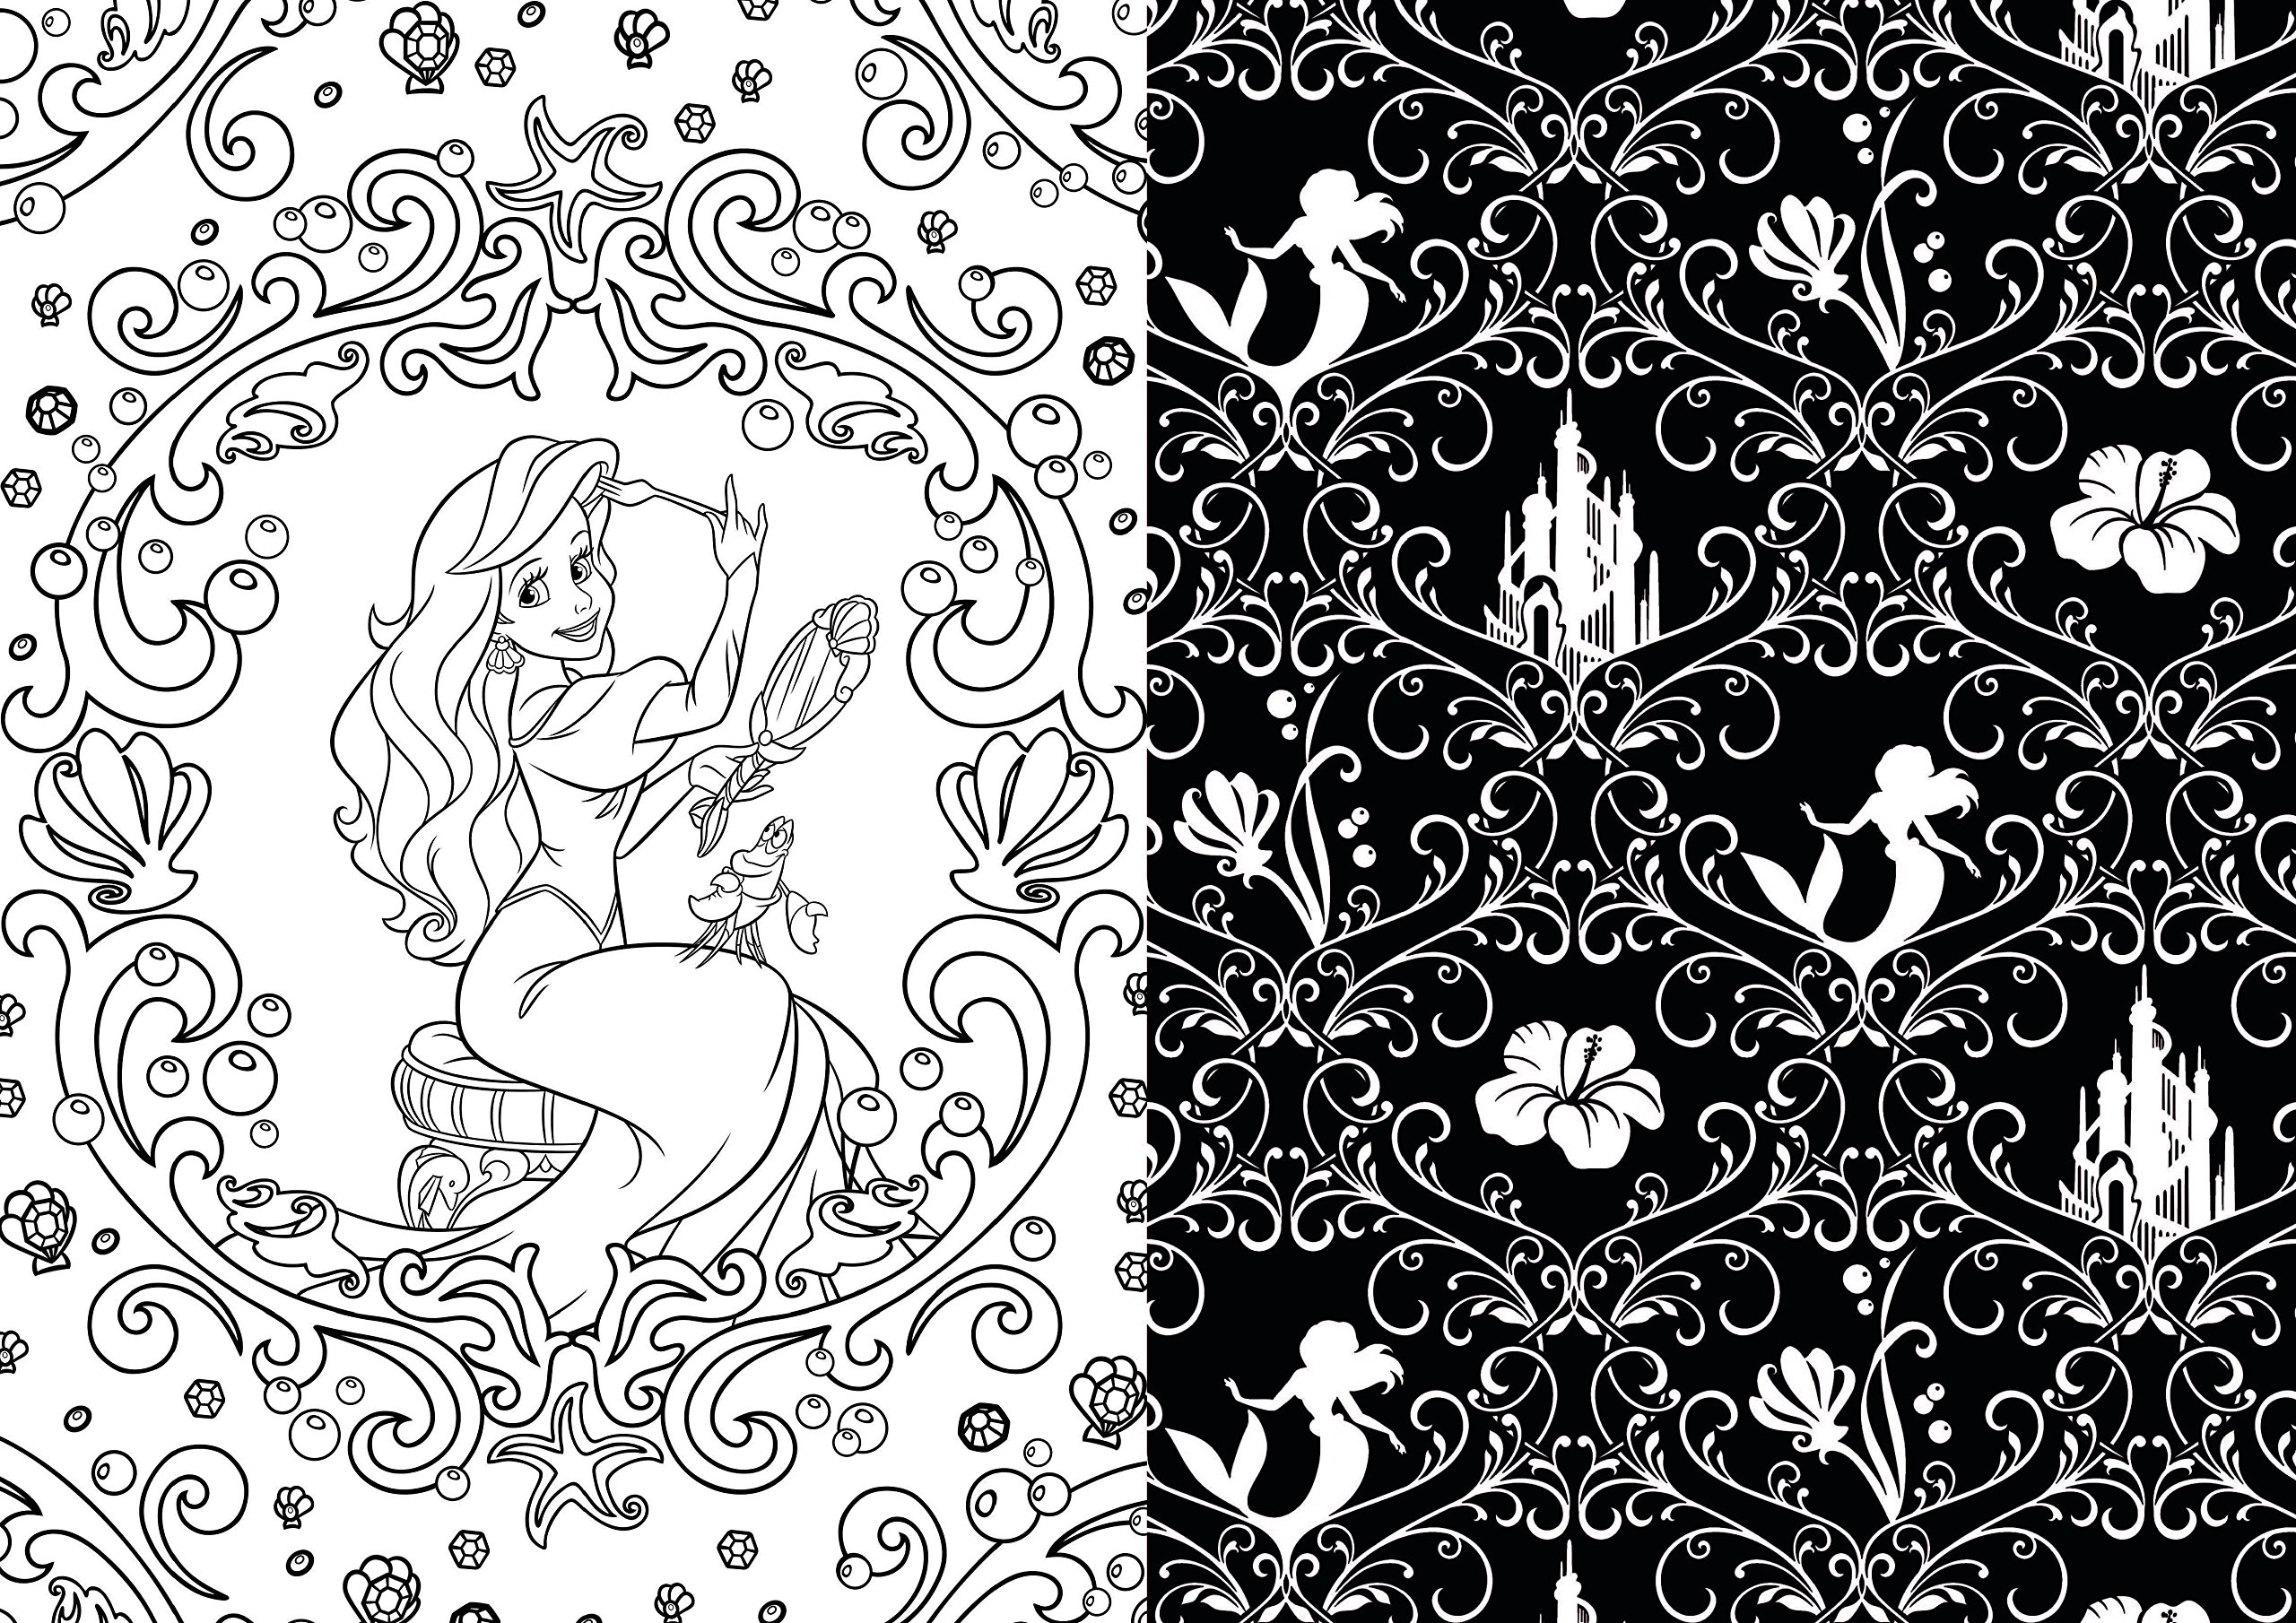 Coloring pages relaxing - Art Of Coloring Disney Princess 100 Images To Inspire Creativity And Relaxation Art Therapy Catherine Saunier Talec Anne Le Meur 0725961057404